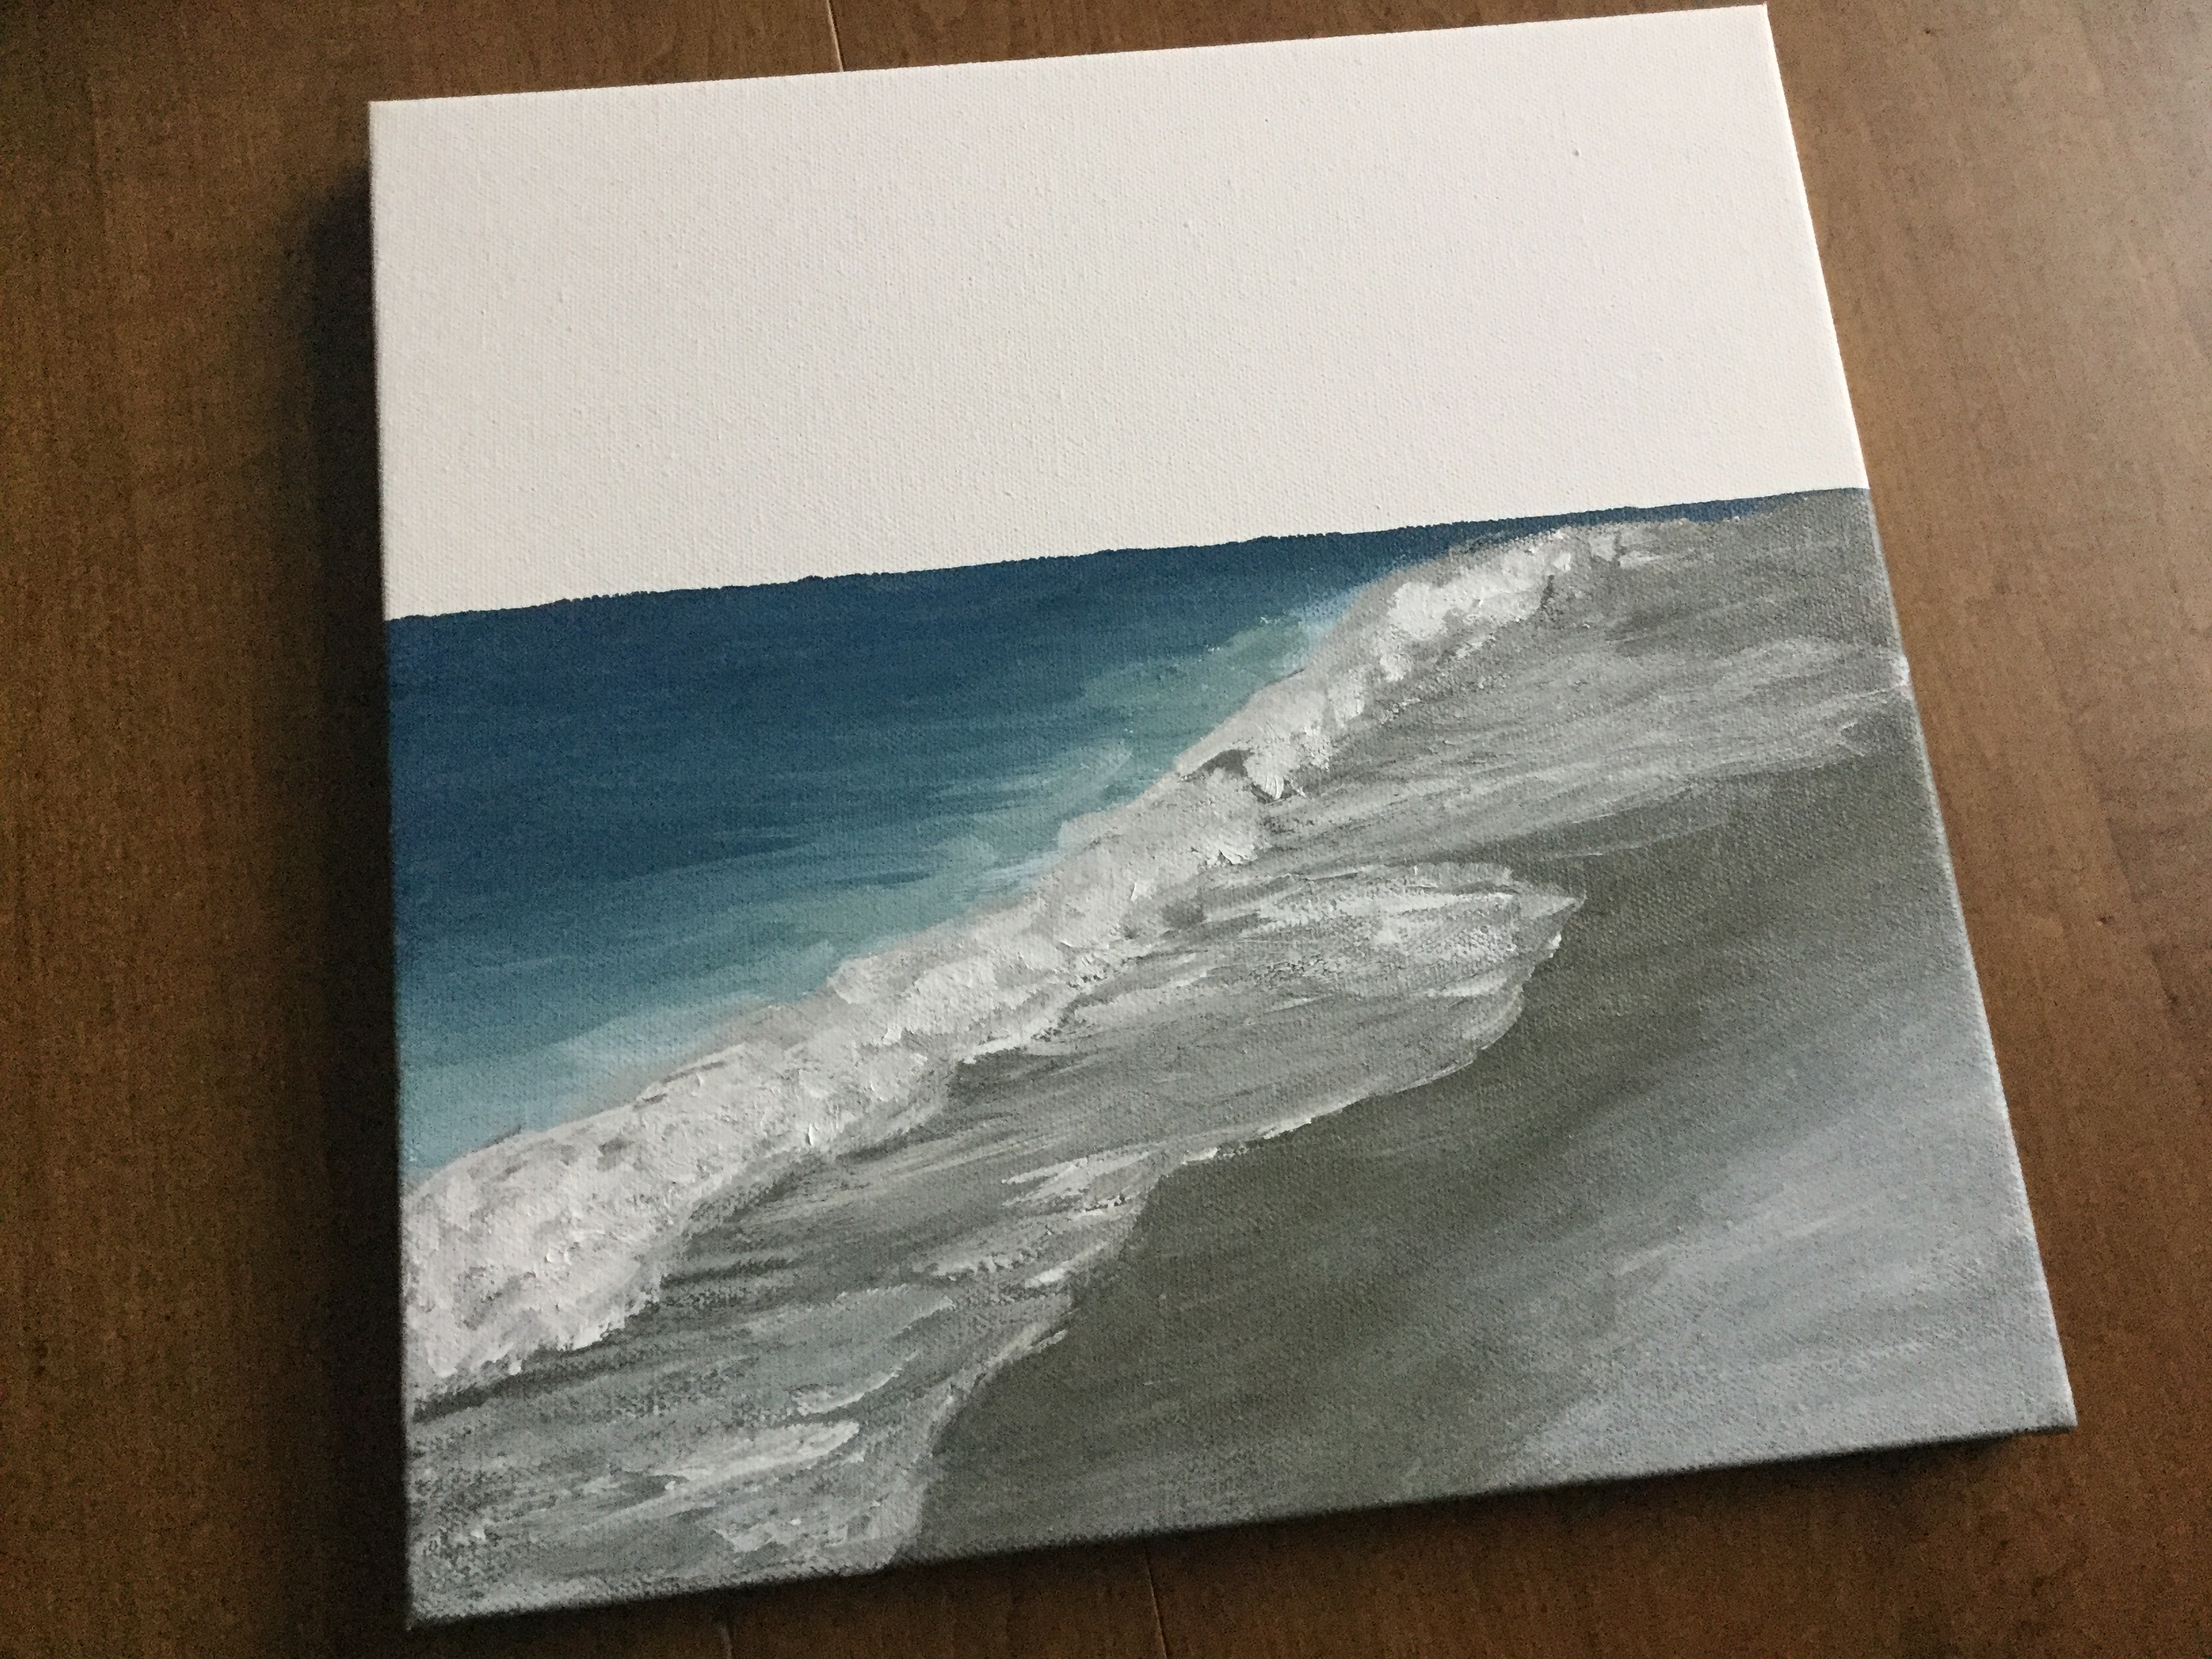 Know your subject - painting the ocean